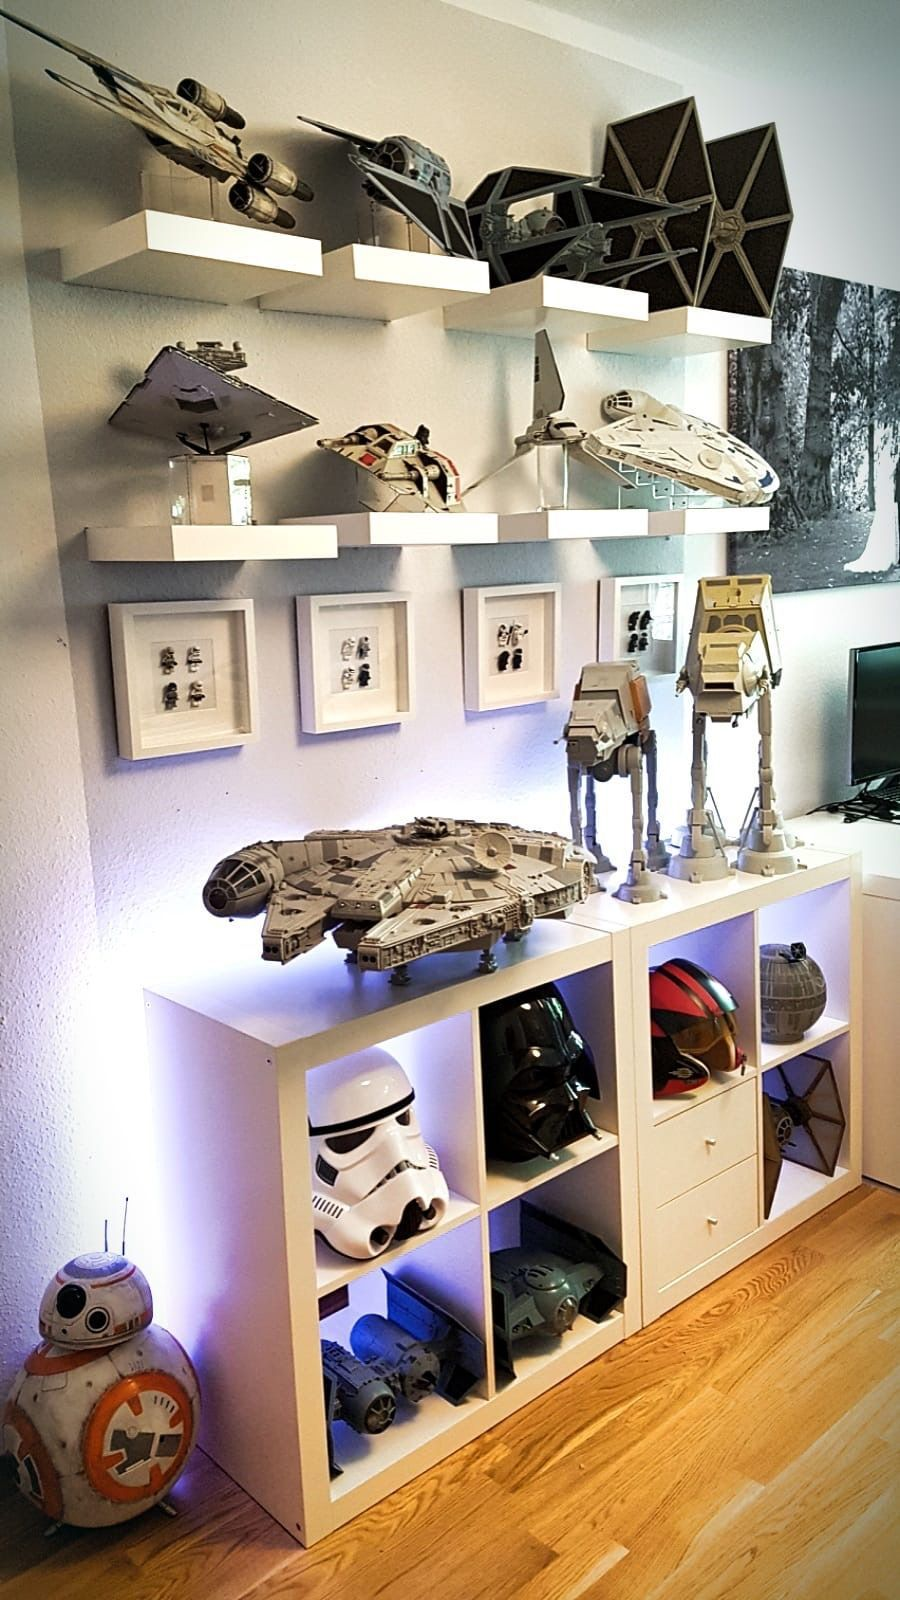 This is what I need to display my star wars stuff  Déco chambre